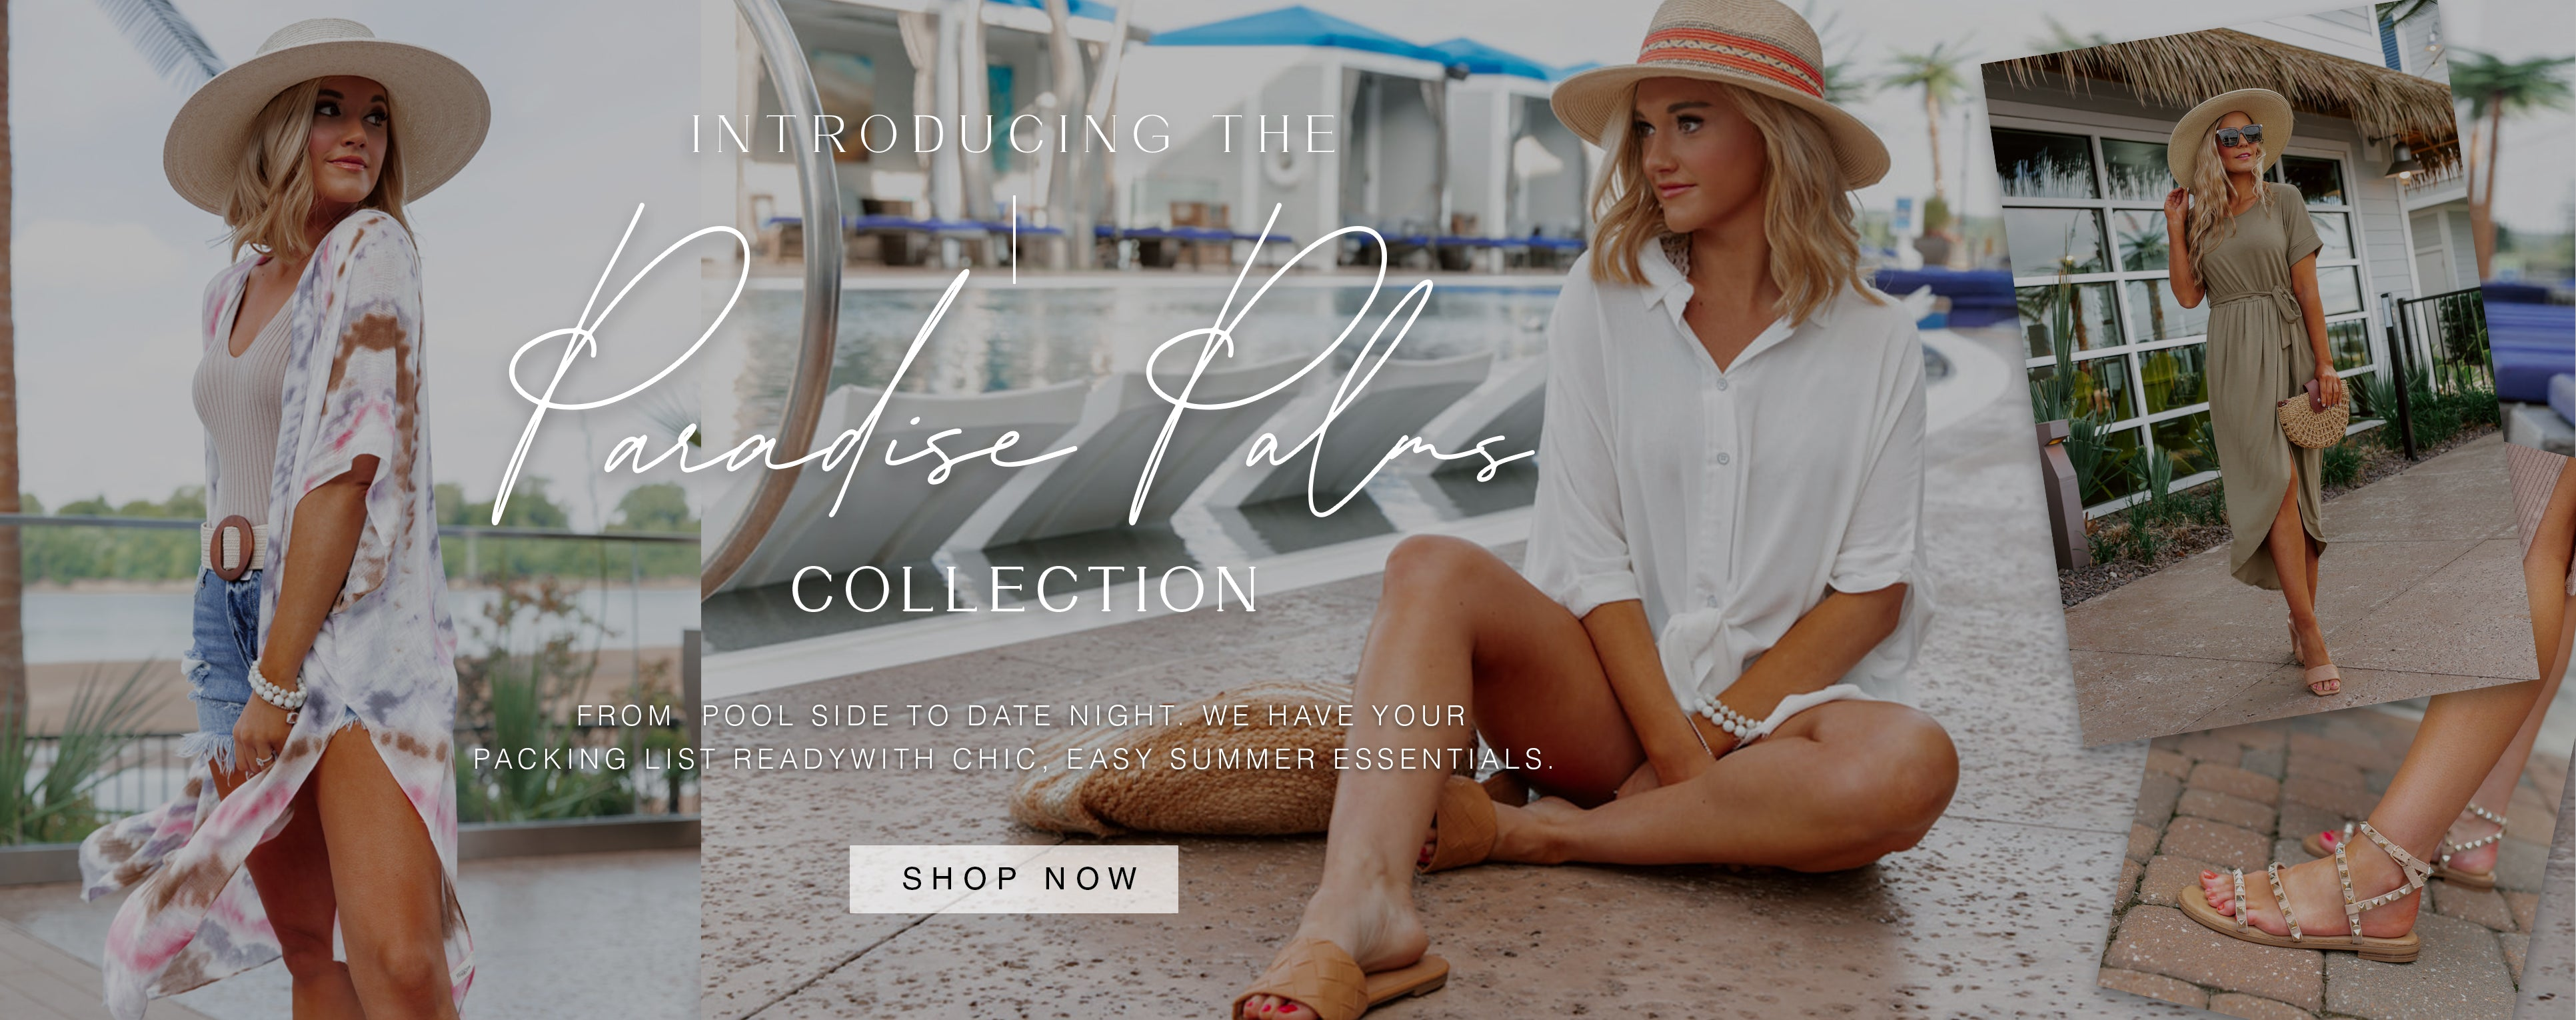 INTRODUCING THE PARADISE PALMS COLLECTION